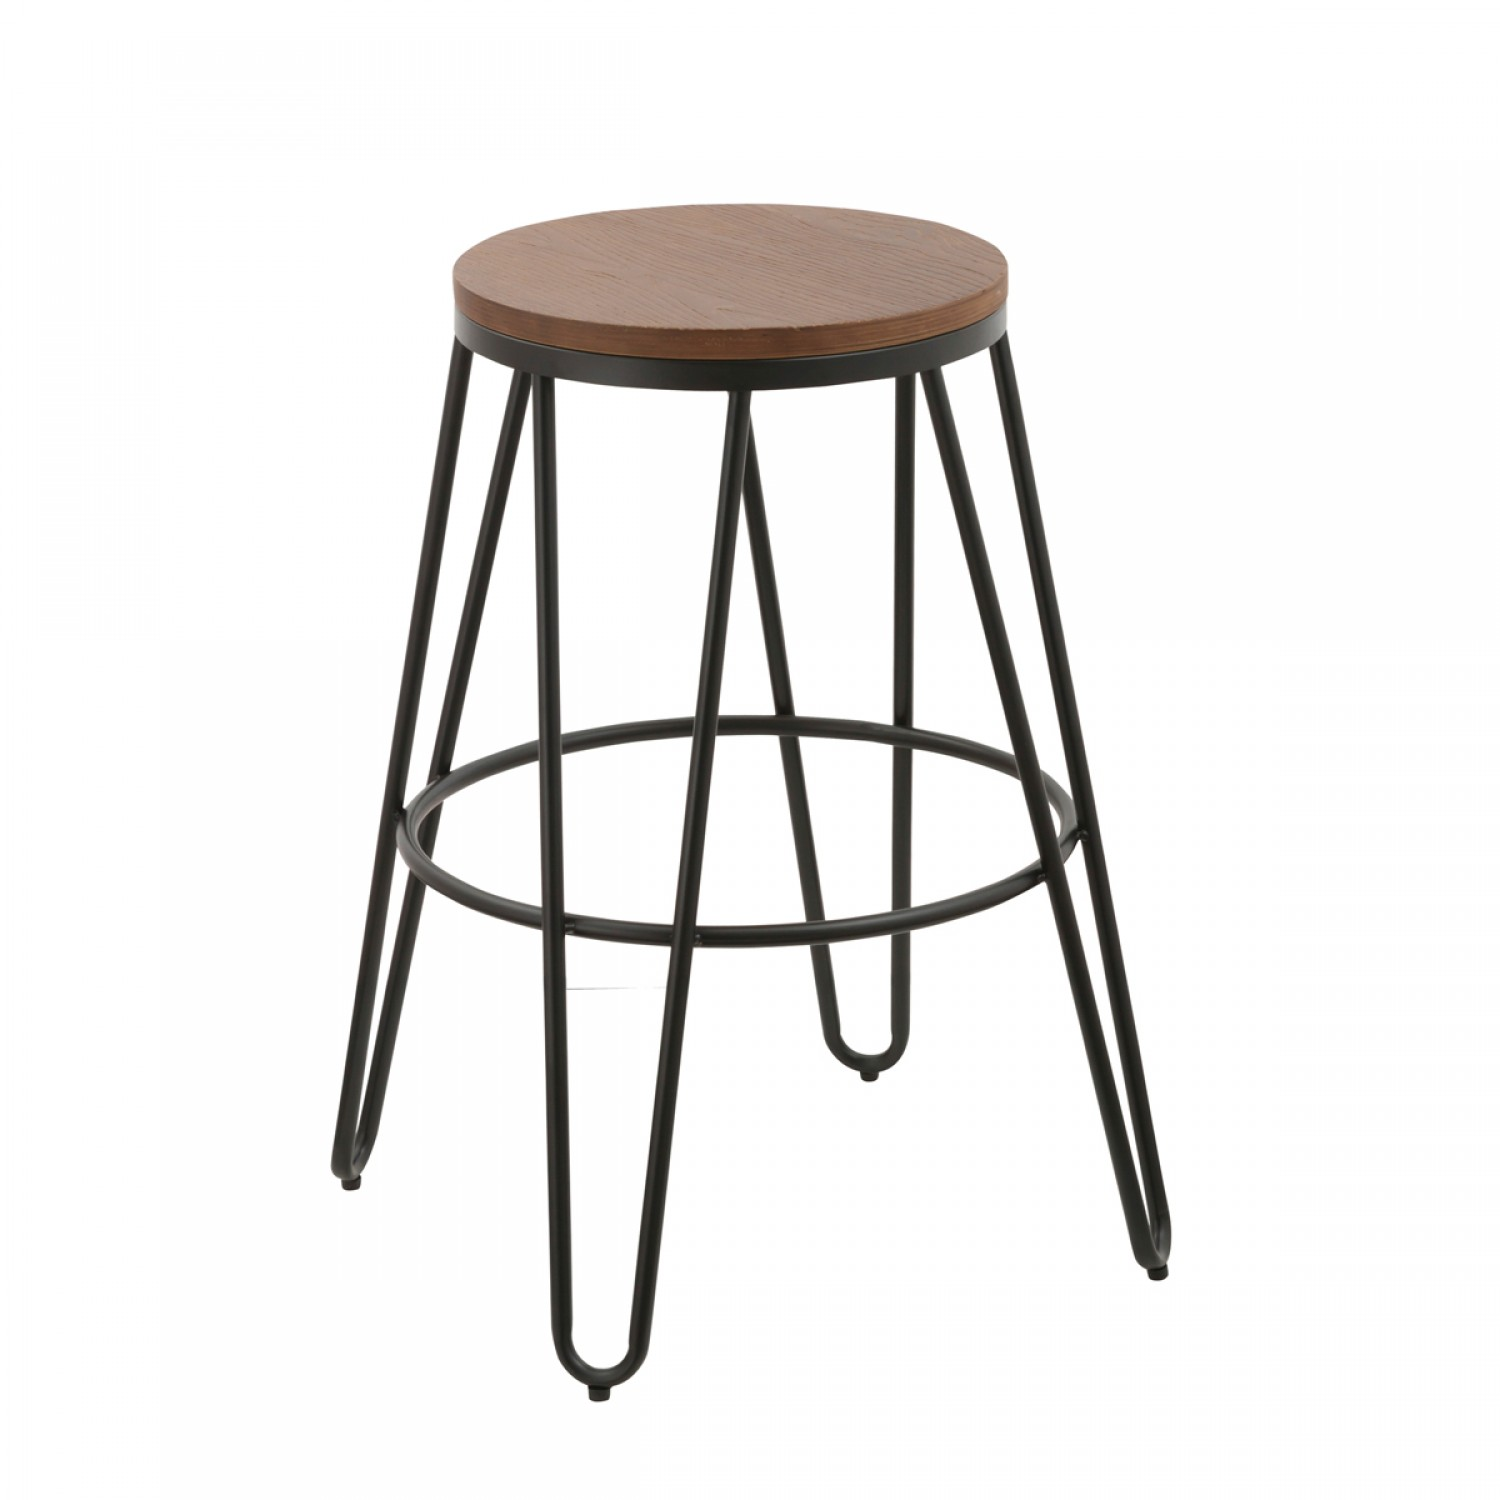 tabouret de bar bois metal id e int ressante pour la conception de meubles en bois qui inspire. Black Bedroom Furniture Sets. Home Design Ideas